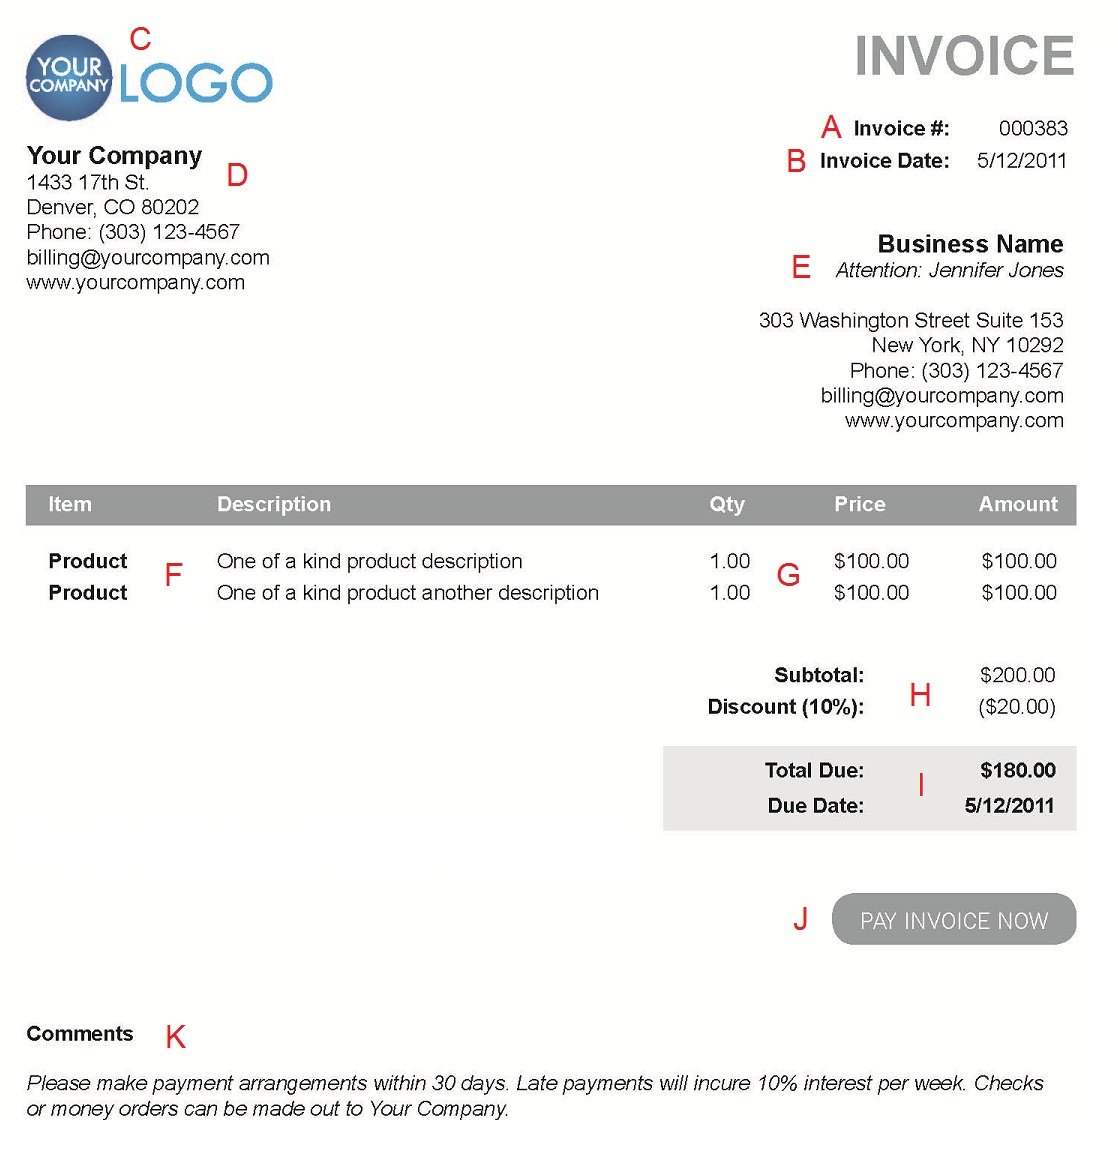 Coolmathgamesus  Splendid The  Different Sections Of An Electronic Payment Invoice With Outstanding A  With Cool Invoice Via Paypal Also Importing Invoices Into Quickbooks In Addition Contractor Invoice Example And Daycare Invoice Template As Well As Word Invoice Template Mac Additionally Invoice Template Word Mac From Paysimplecom With Coolmathgamesus  Outstanding The  Different Sections Of An Electronic Payment Invoice With Cool A  And Splendid Invoice Via Paypal Also Importing Invoices Into Quickbooks In Addition Contractor Invoice Example From Paysimplecom